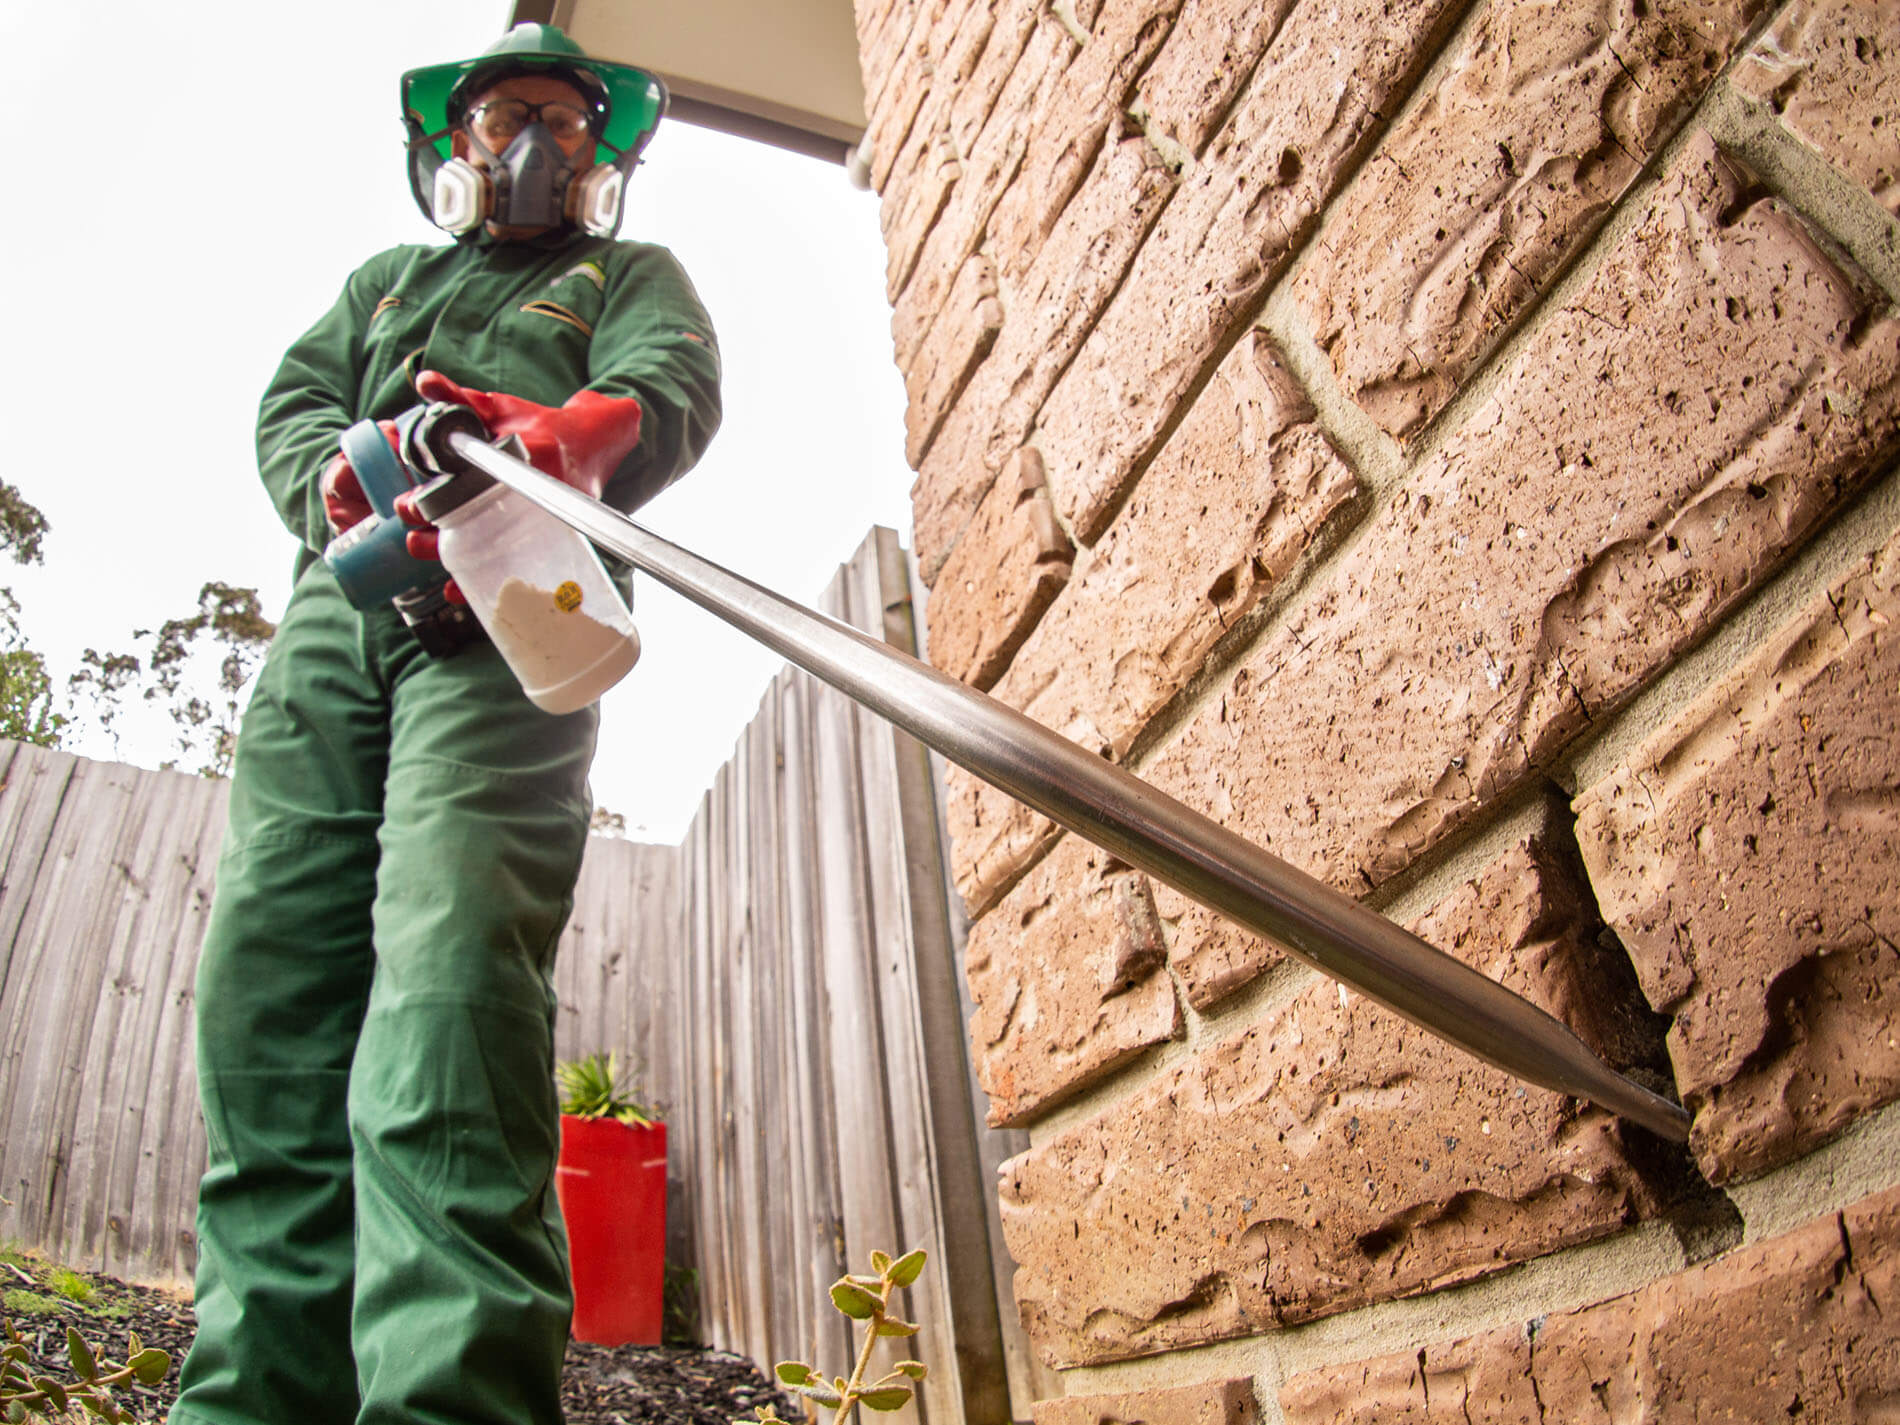 pied-piper-pest-control-services-hobart-southern-tasmania-9